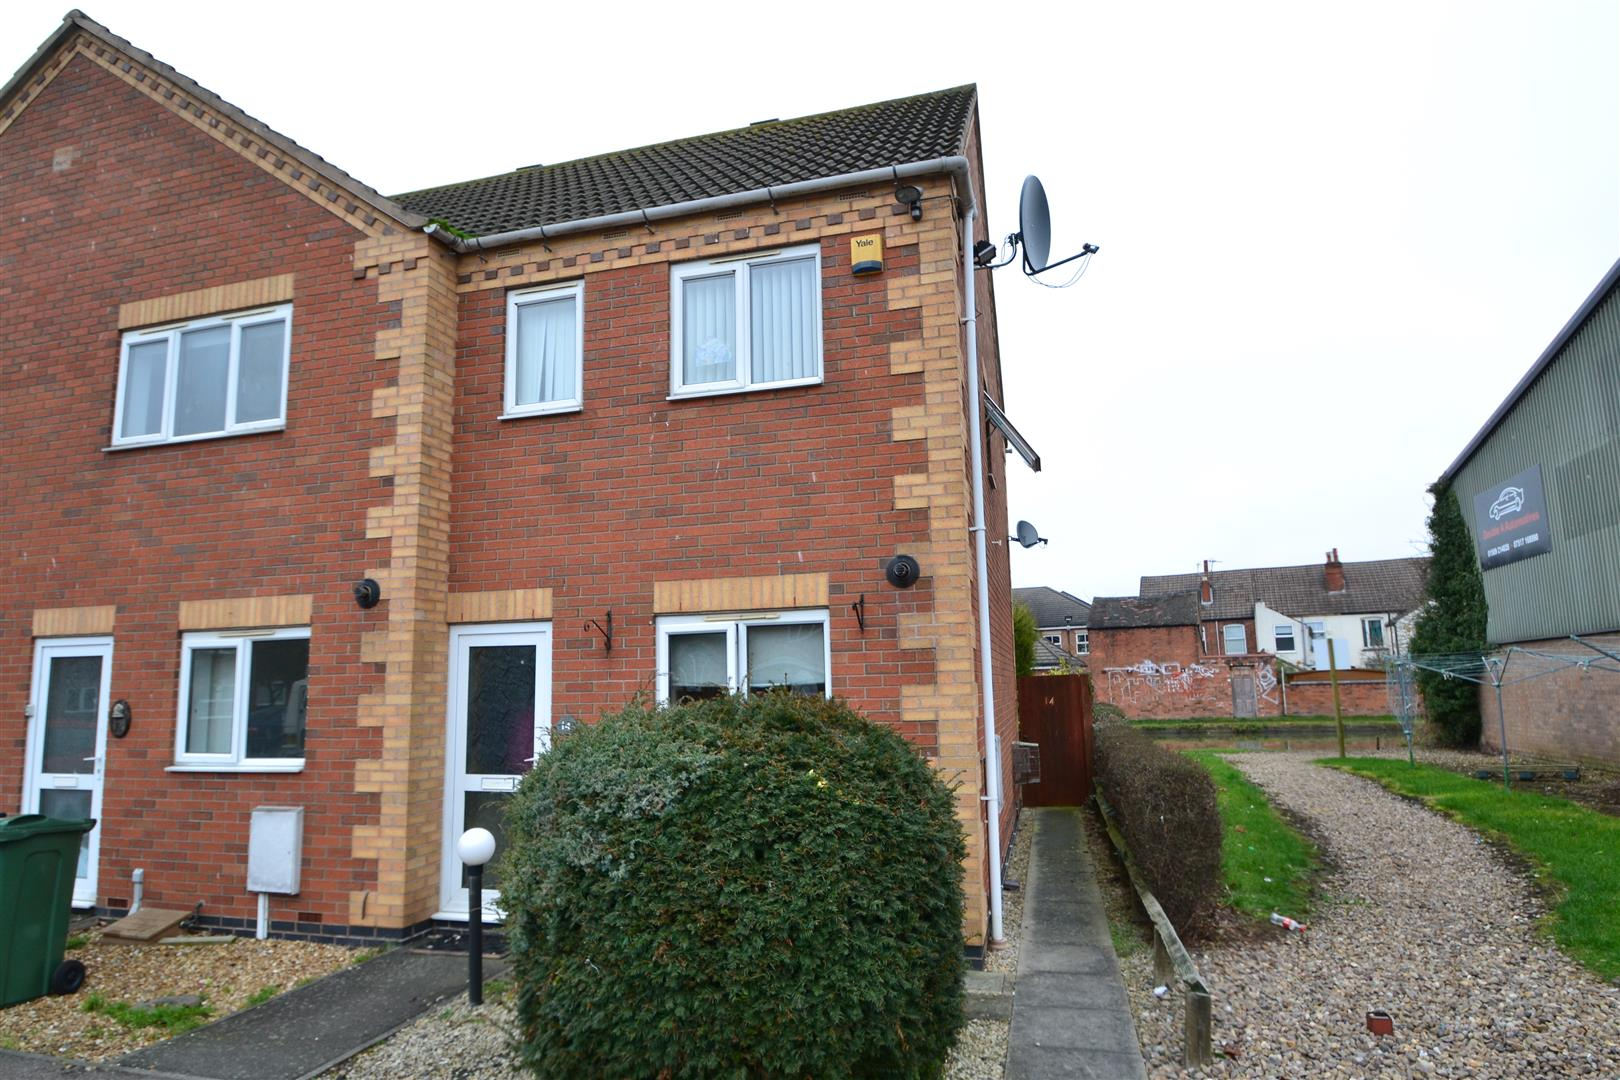 2 Bedrooms Semi Detached House for sale in Annies Wharf, Loughborough